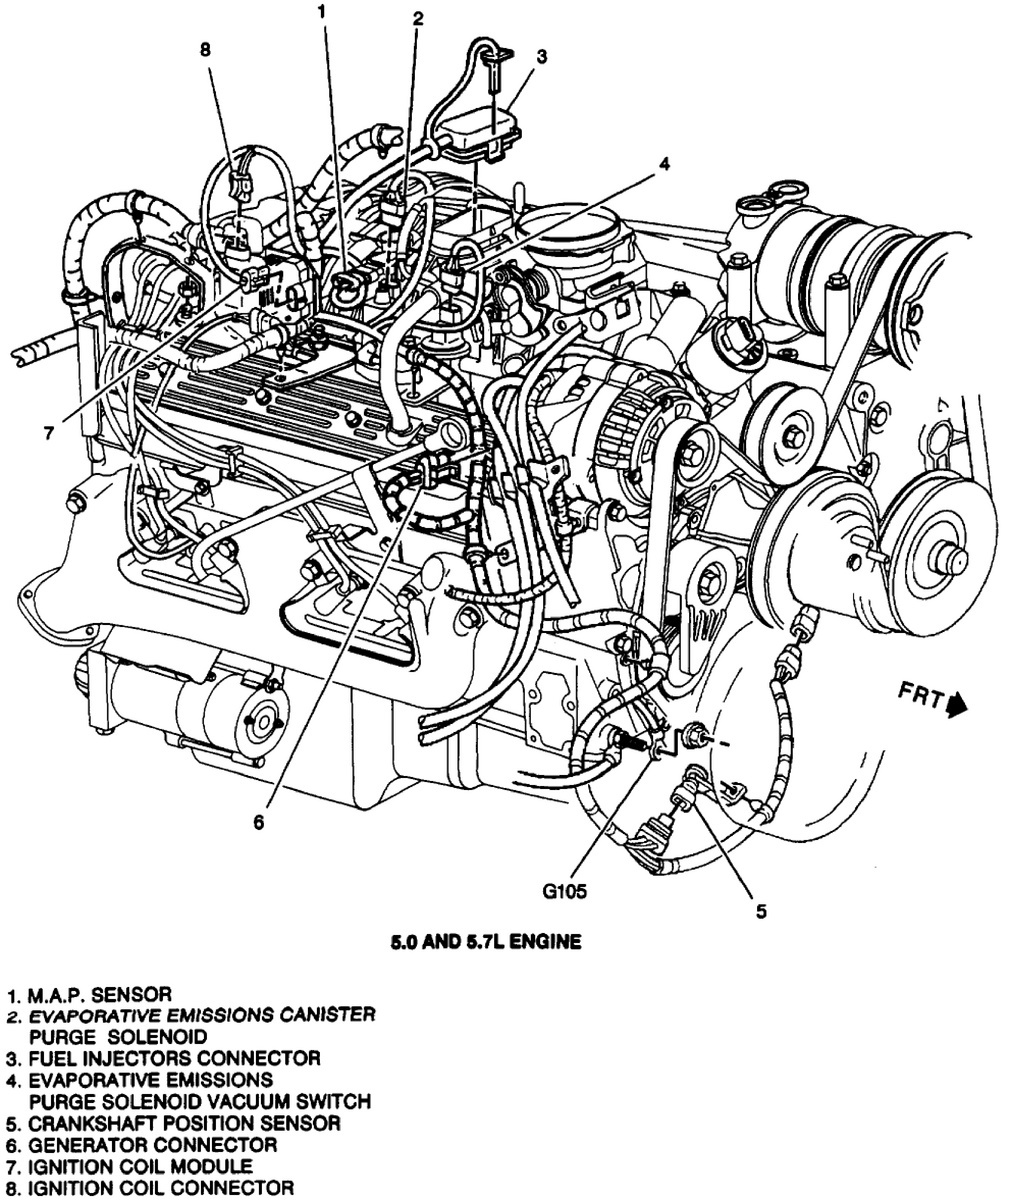 1998 Chevy Silverado Engine Diagram Wiring Diagram Browse A Browse A Cfcarsnoleggio It